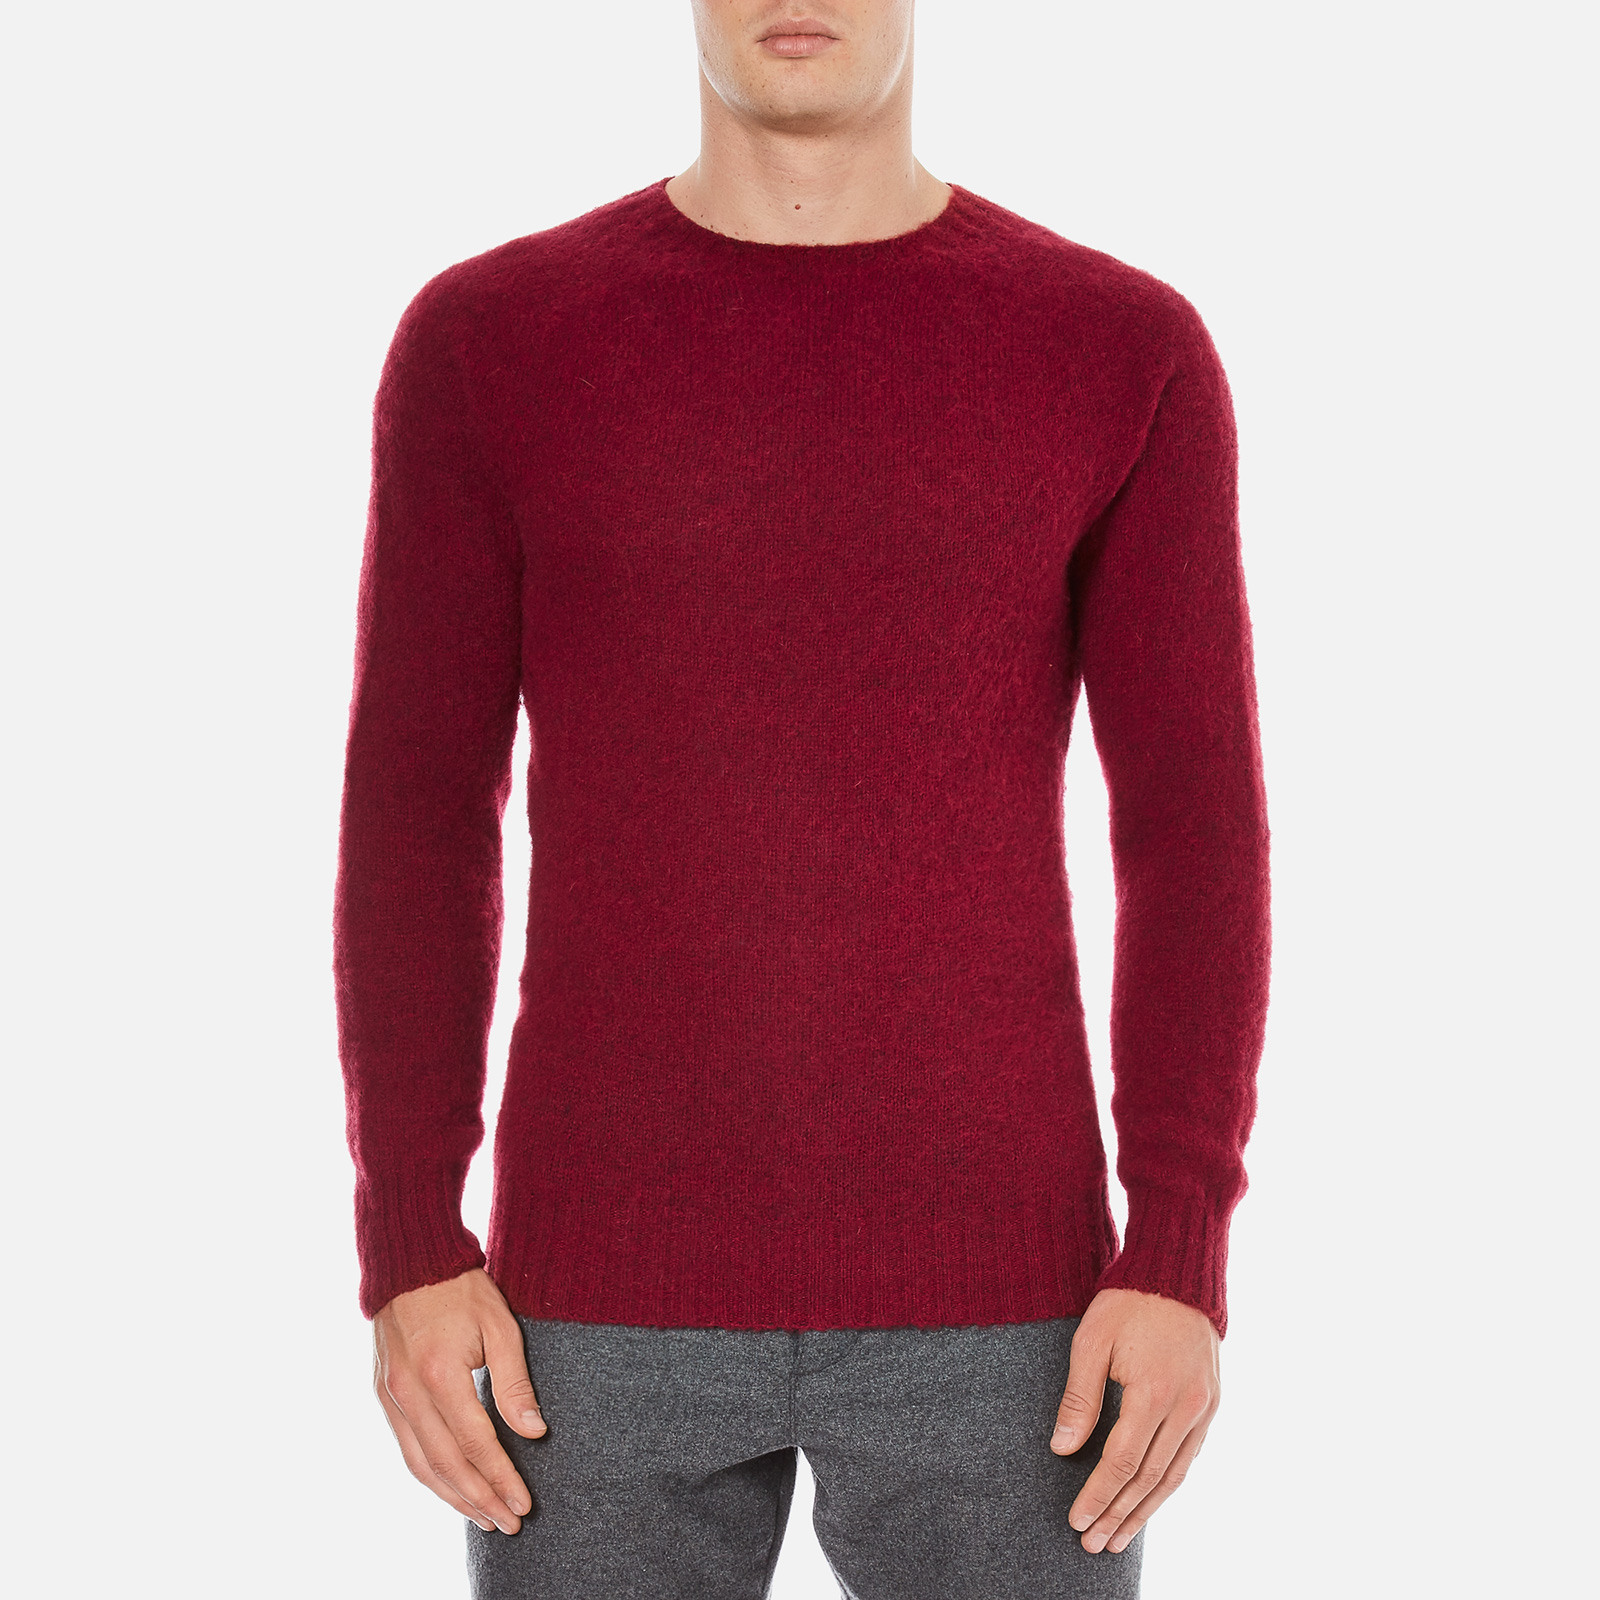 7c38dd7da6e1d0 YMC Men s Suedehead Brushed Jumper - Red - Free UK Delivery over £50